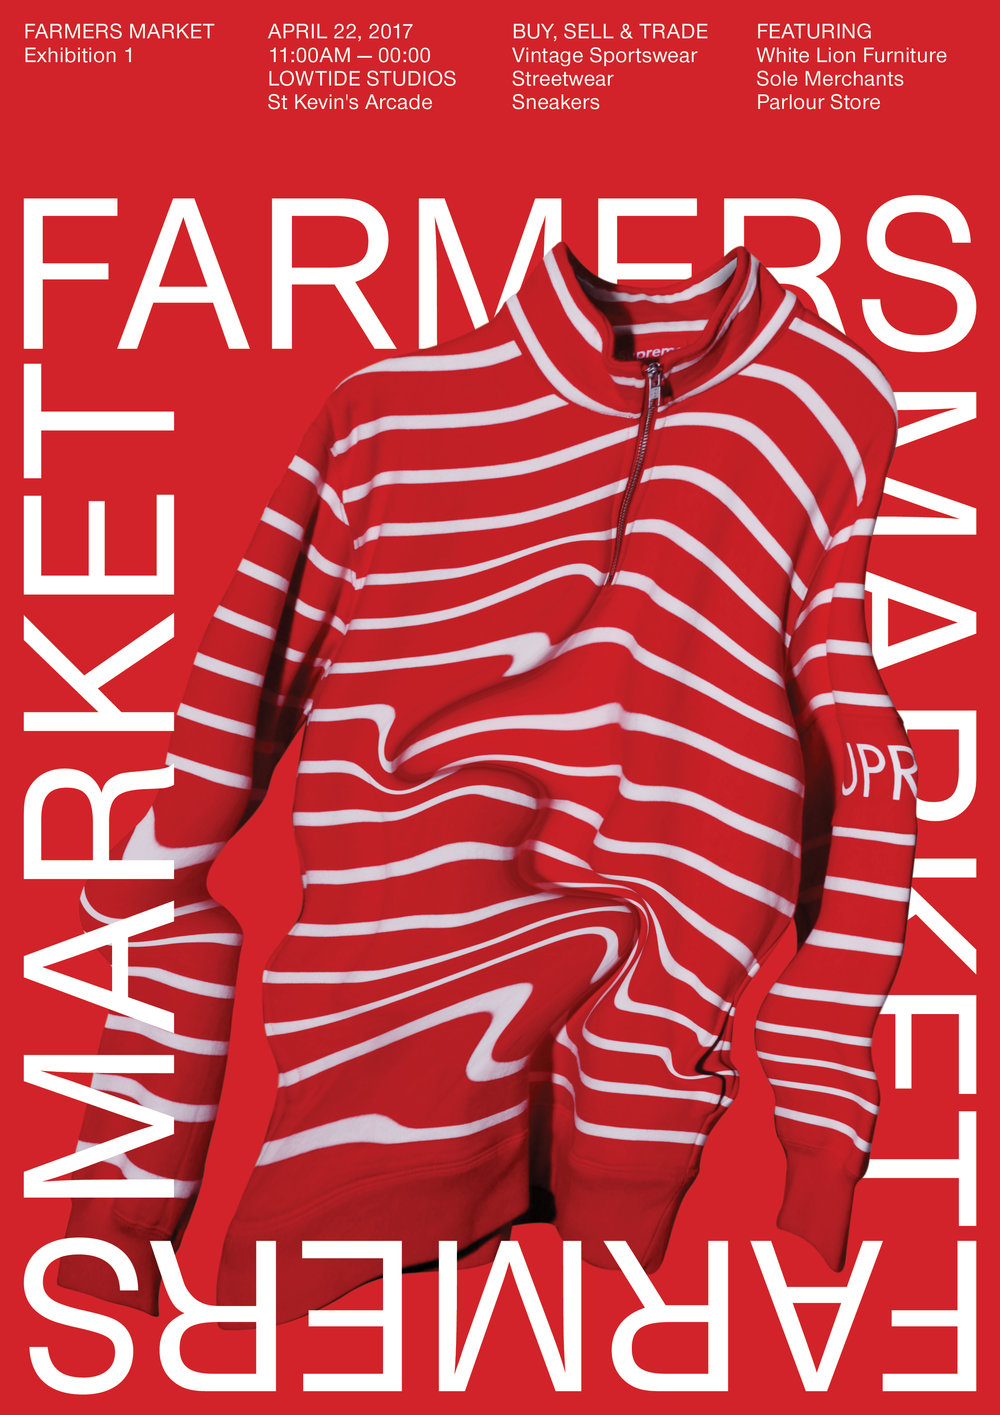 Above: Poster work for Farmers Market (St Kevin's)